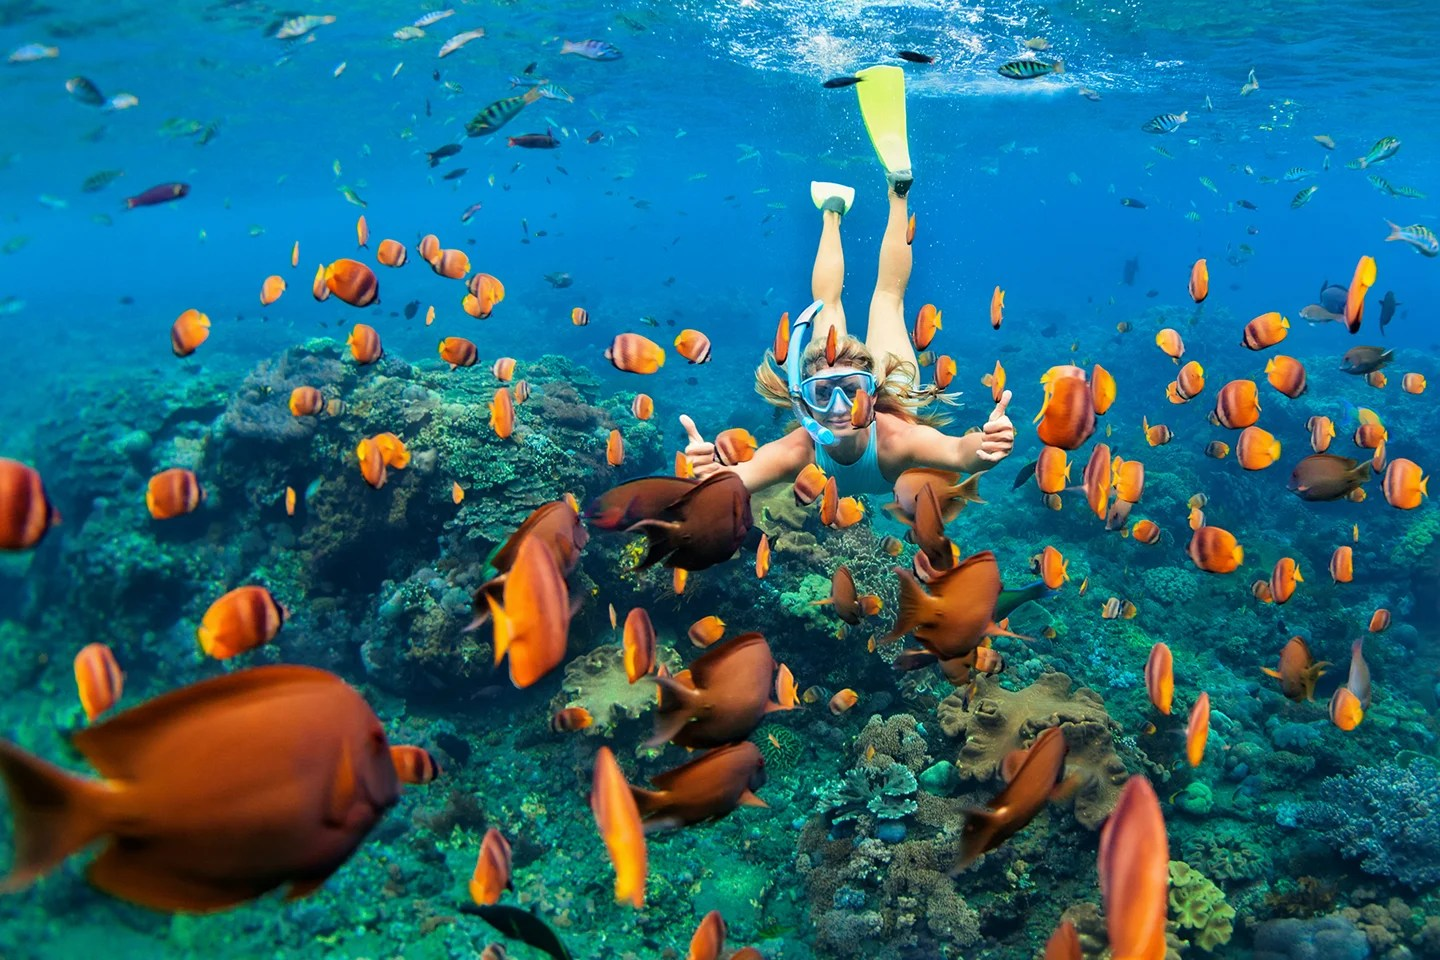 A woman snorkeling on an underwater reef around brightly-colored fish